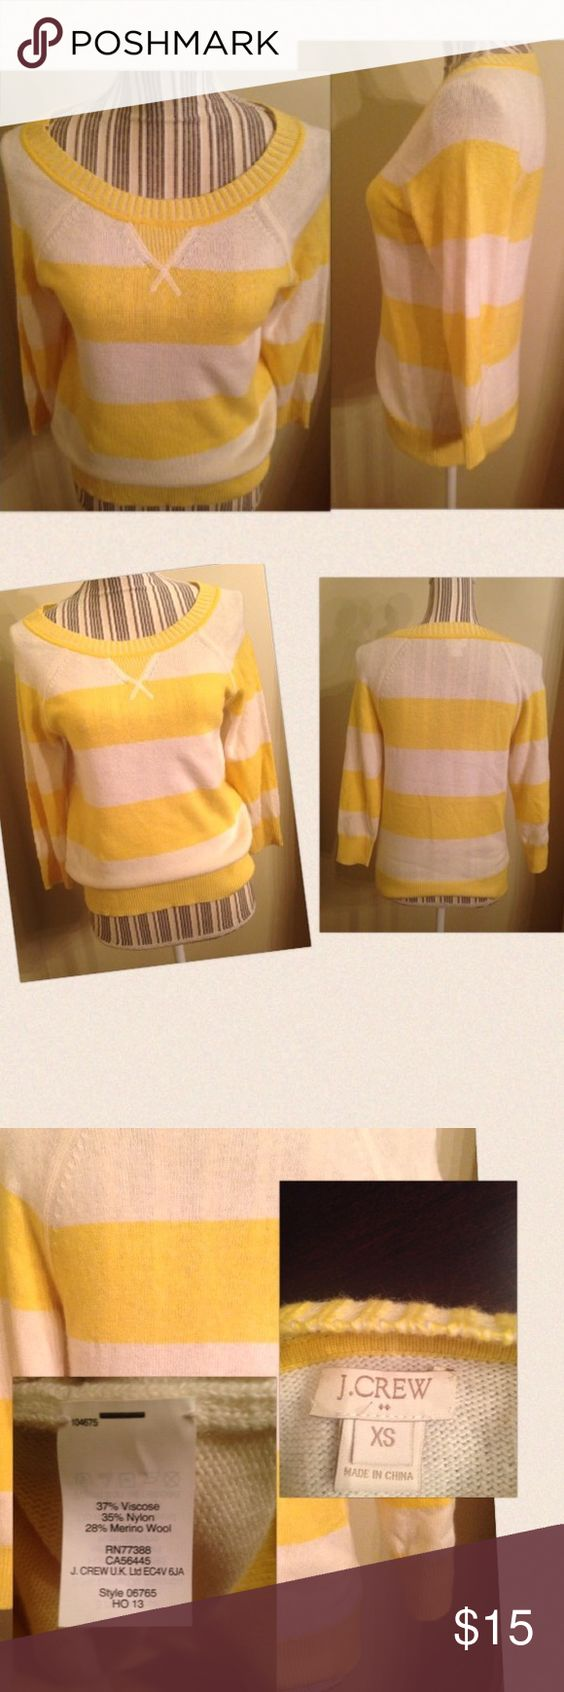 Yellow and white sweater This sweater measures 15 inches from armpit to armpit .   Worn once.  In excellent condition NO peeling, , stains or holes.  A great sweater for the winter. Reasonable offers only.. J. Crew Sweaters Crew & Scoop Necks